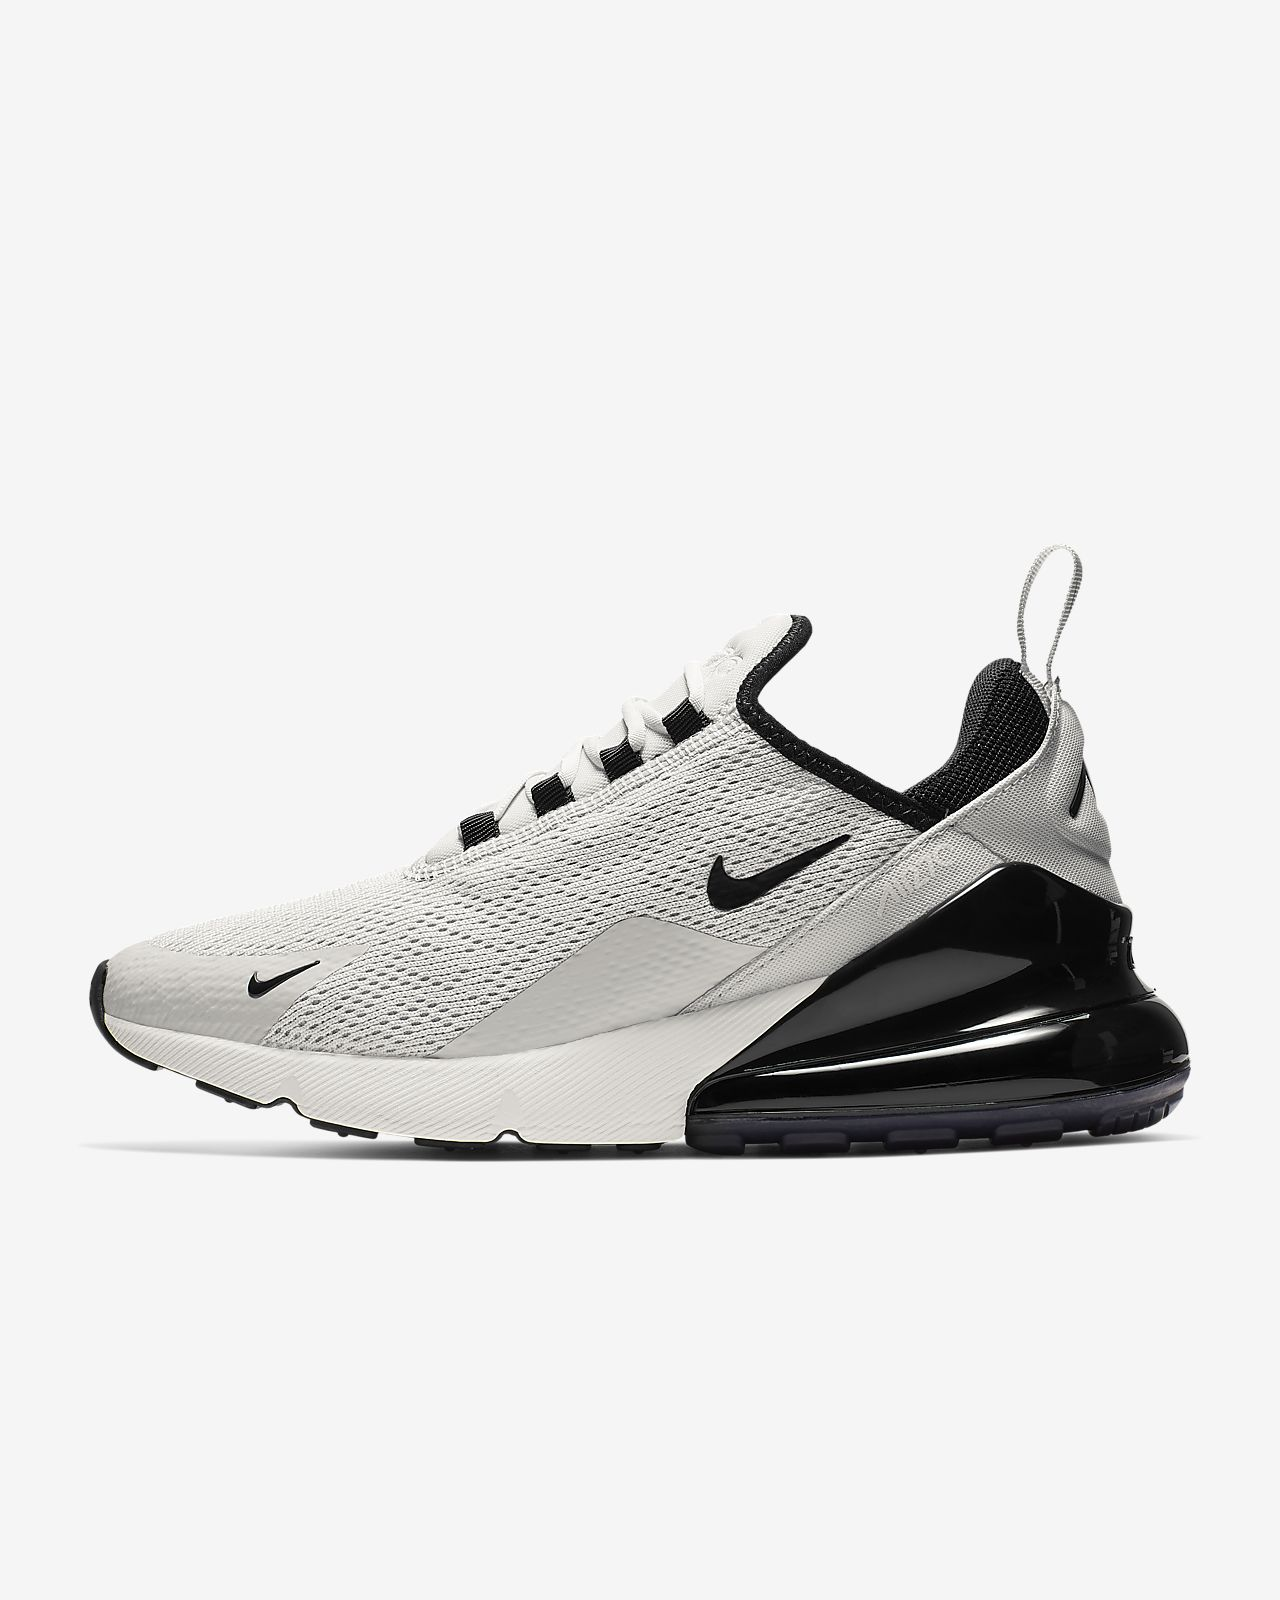 separation shoes 7808f 2df80 ... Nike Air Max 270 Women s Shoe